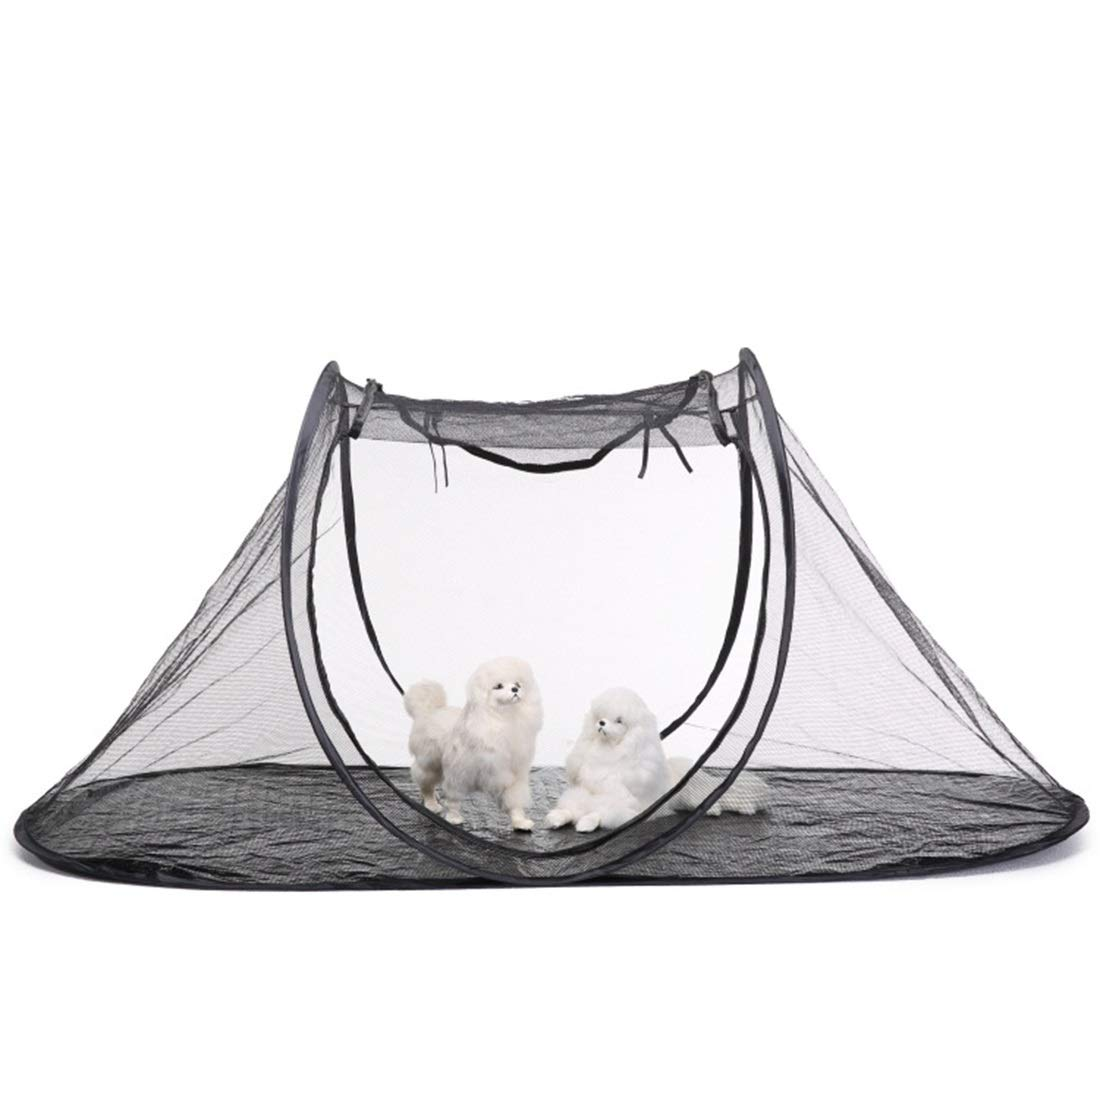 189x90x78cm SHYPwM Dog Cage Collapsible Storage Outdoor Pet Tent Cats and Dogs Travel Outdoor Pet Cage Indoor and Outdoor Universal (Size   189x90x78cm)